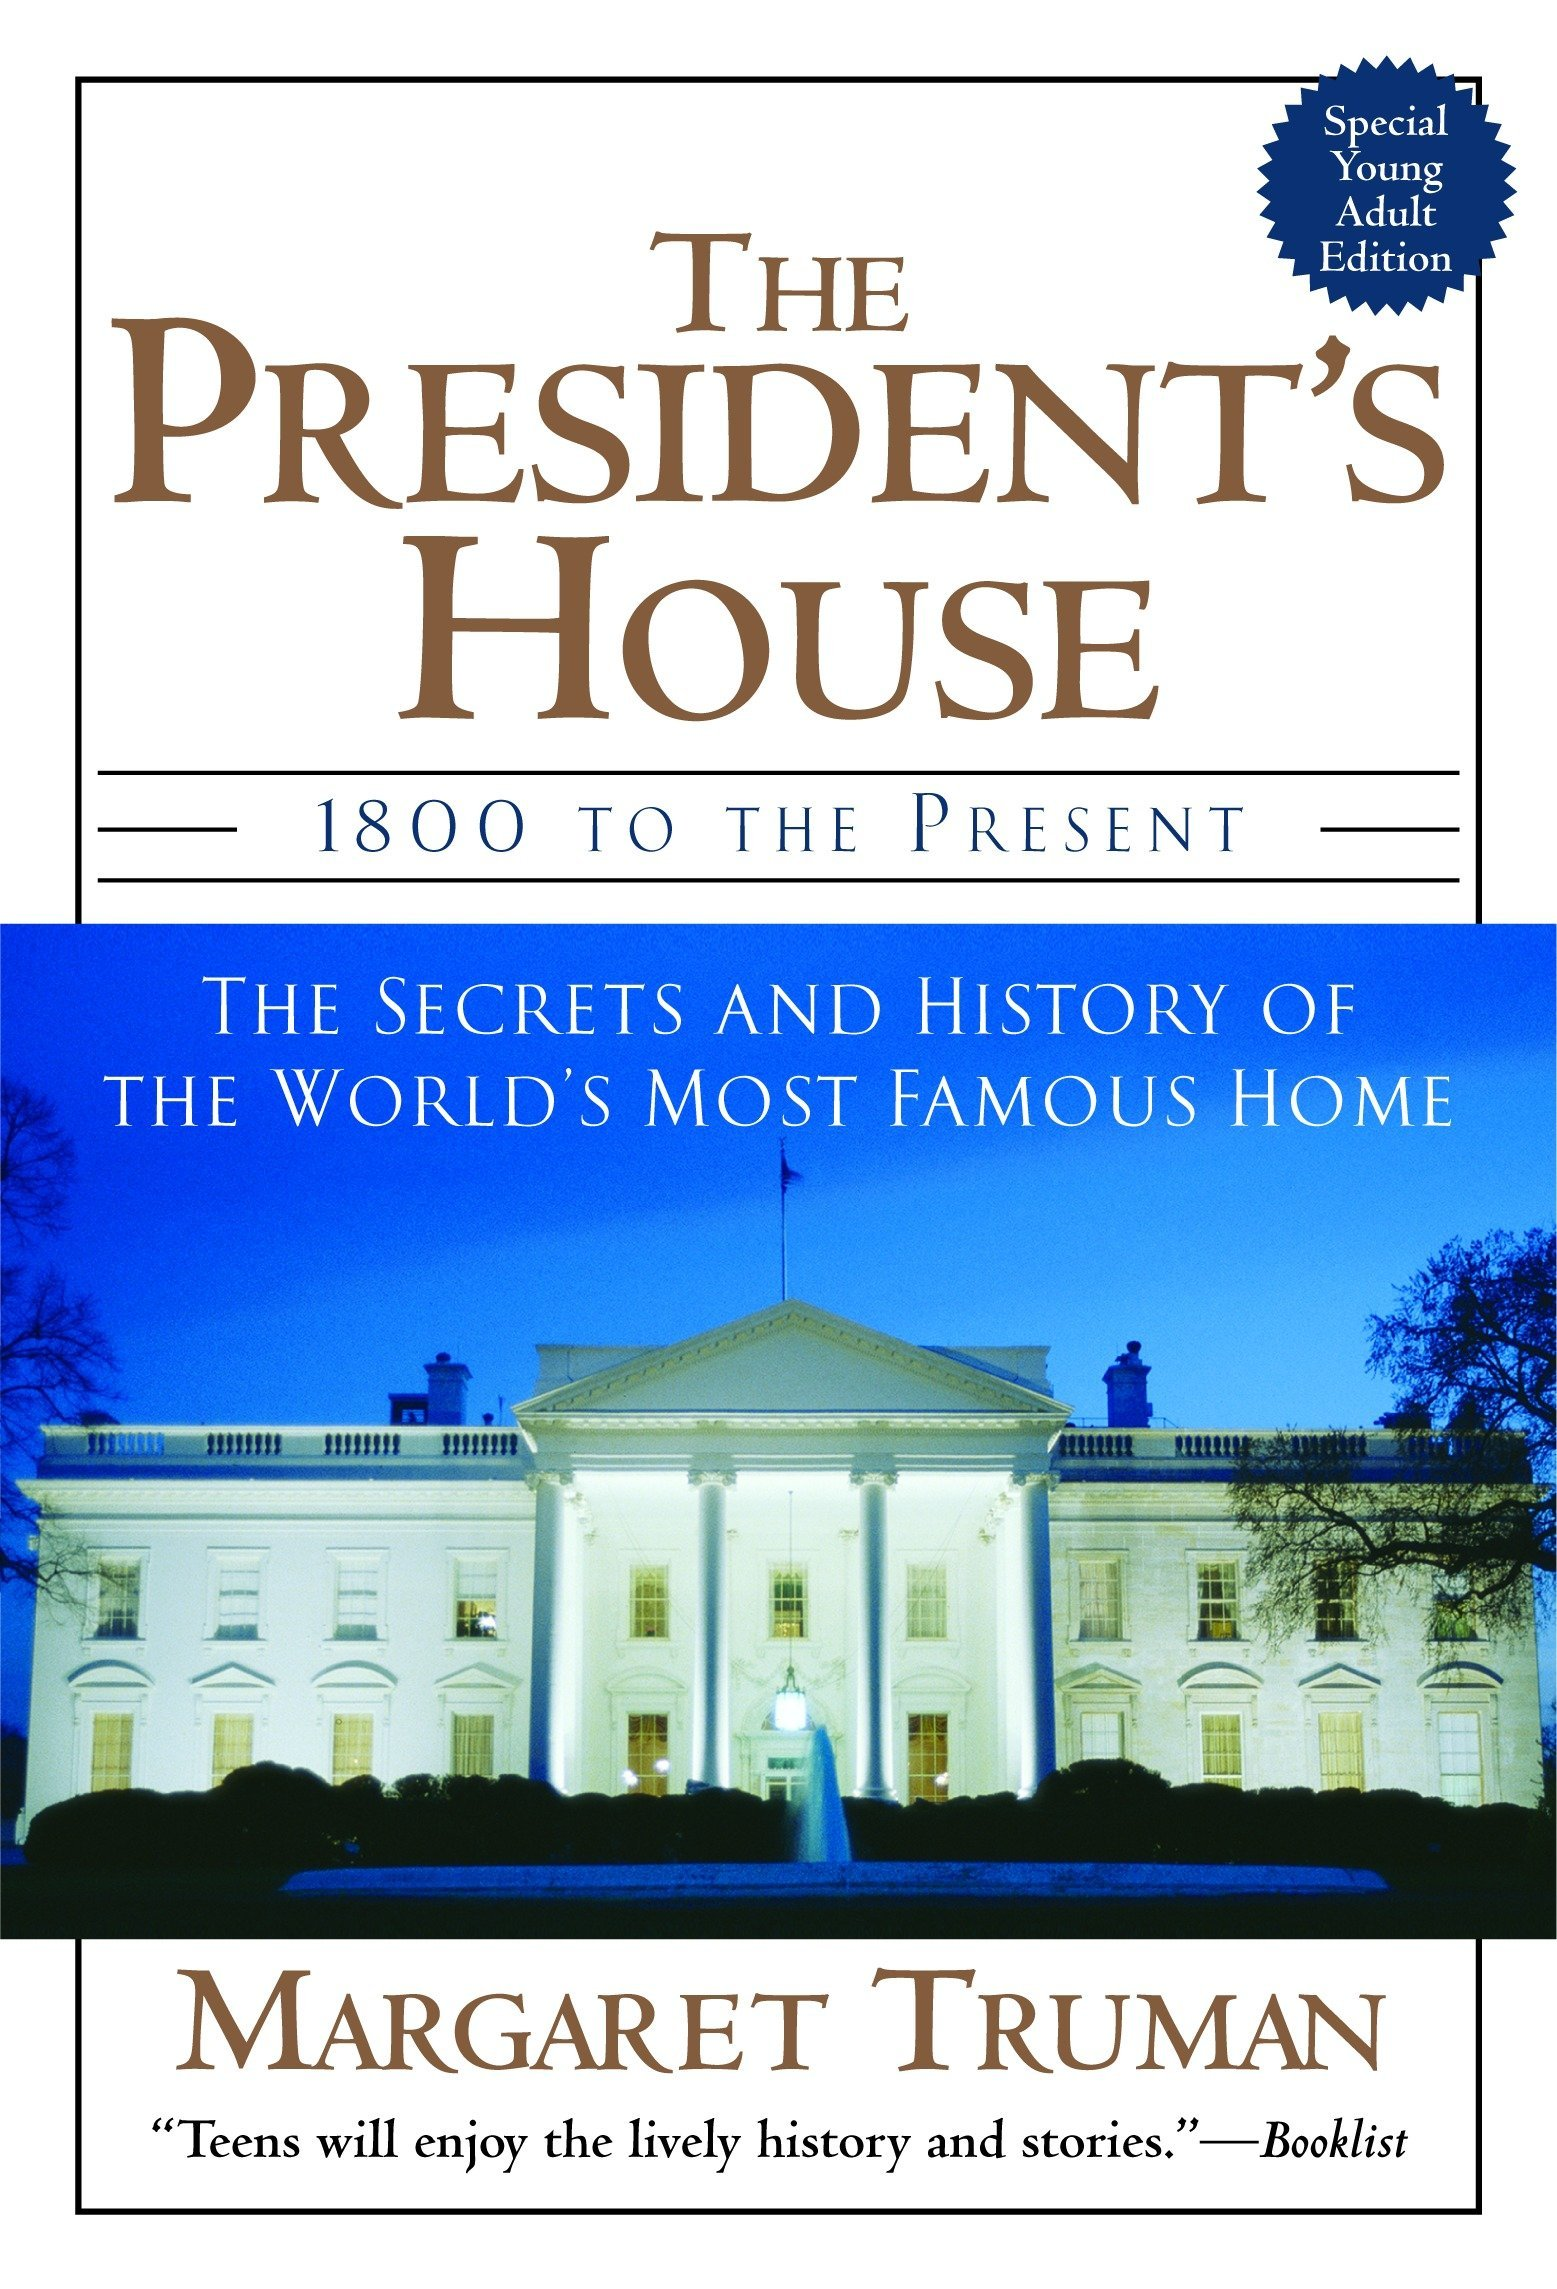 Read Online The President's House: 1800 to the Present The Secrets and History of the World's Most Famous Home ebook